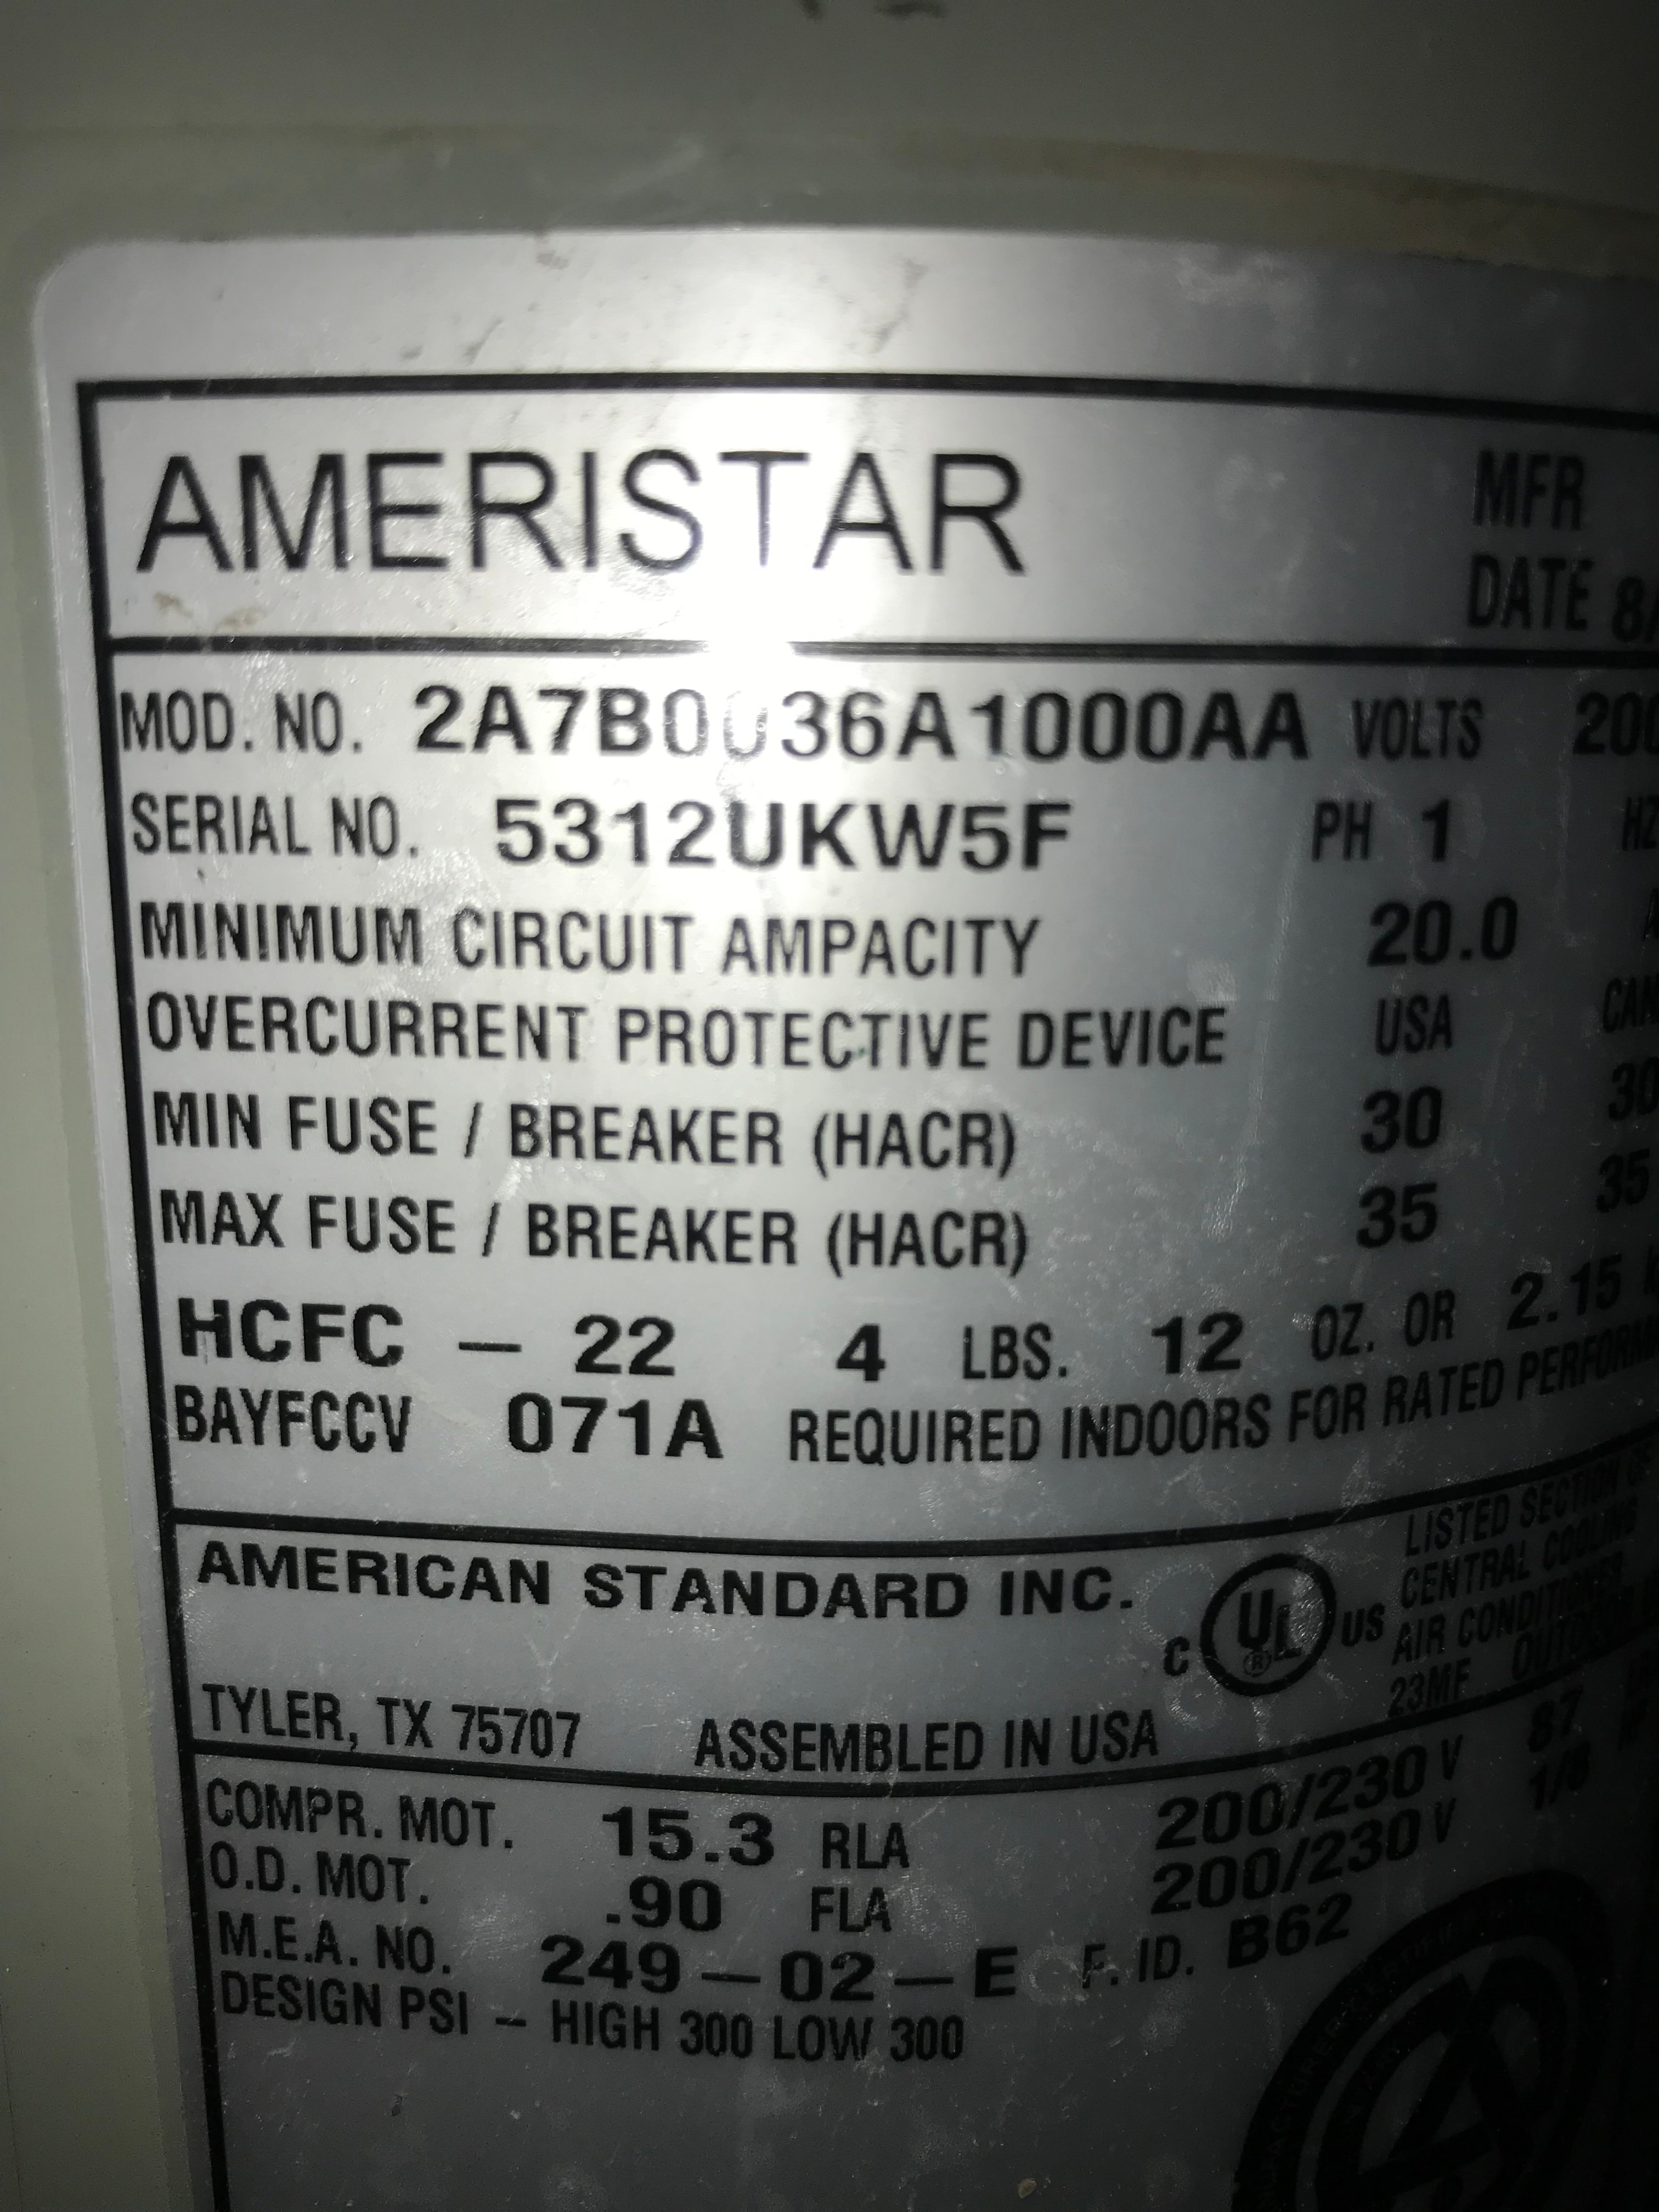 I have an Ameristar 2a7b0036a1000aa air conditioner